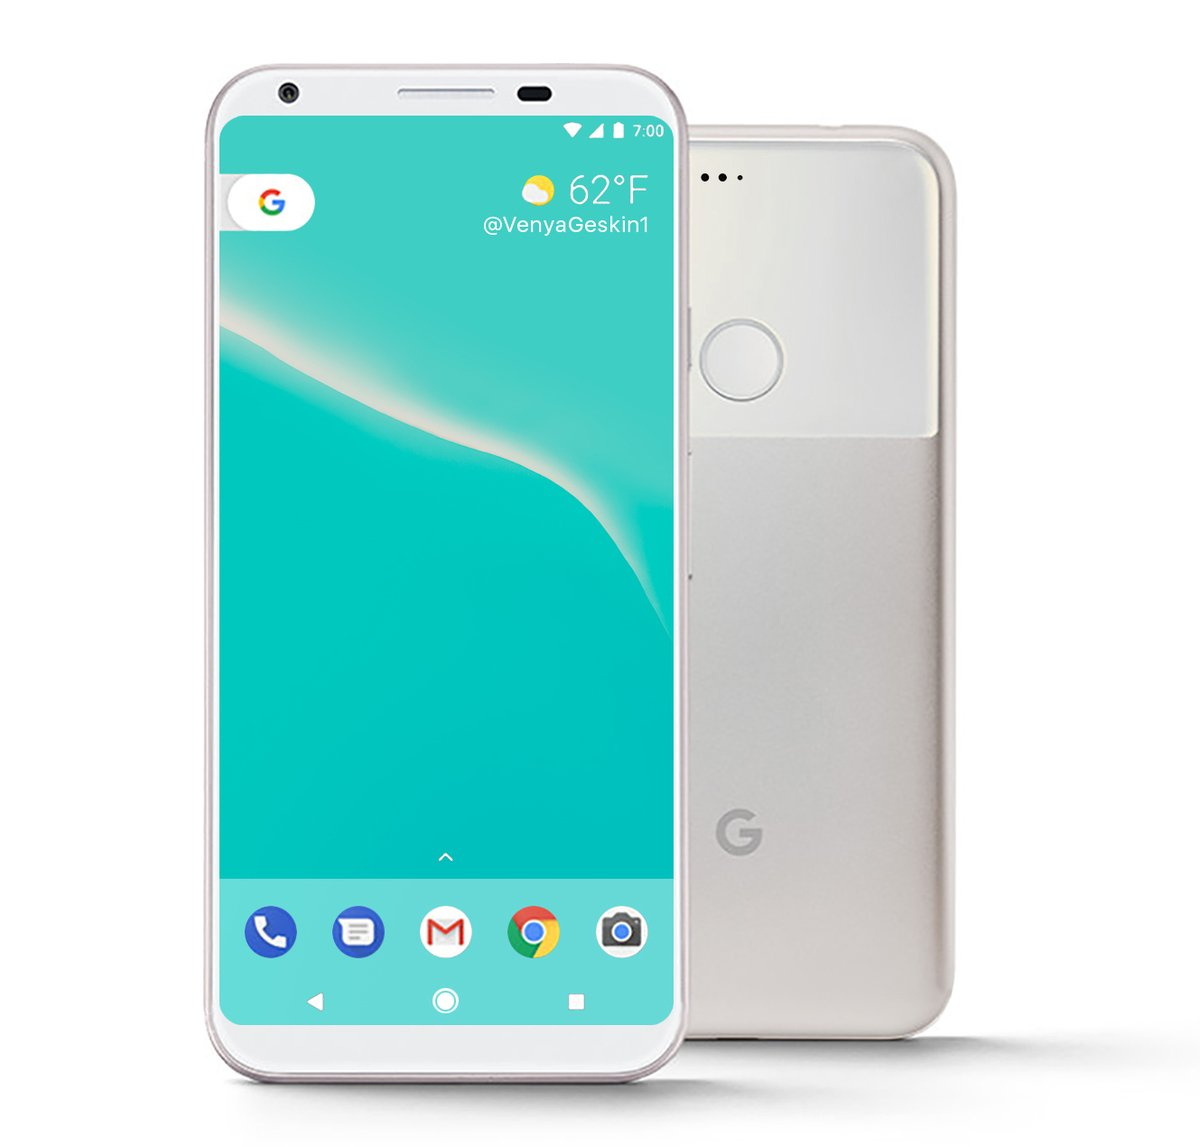 Google Pixel Phone Will Be A Premium Device